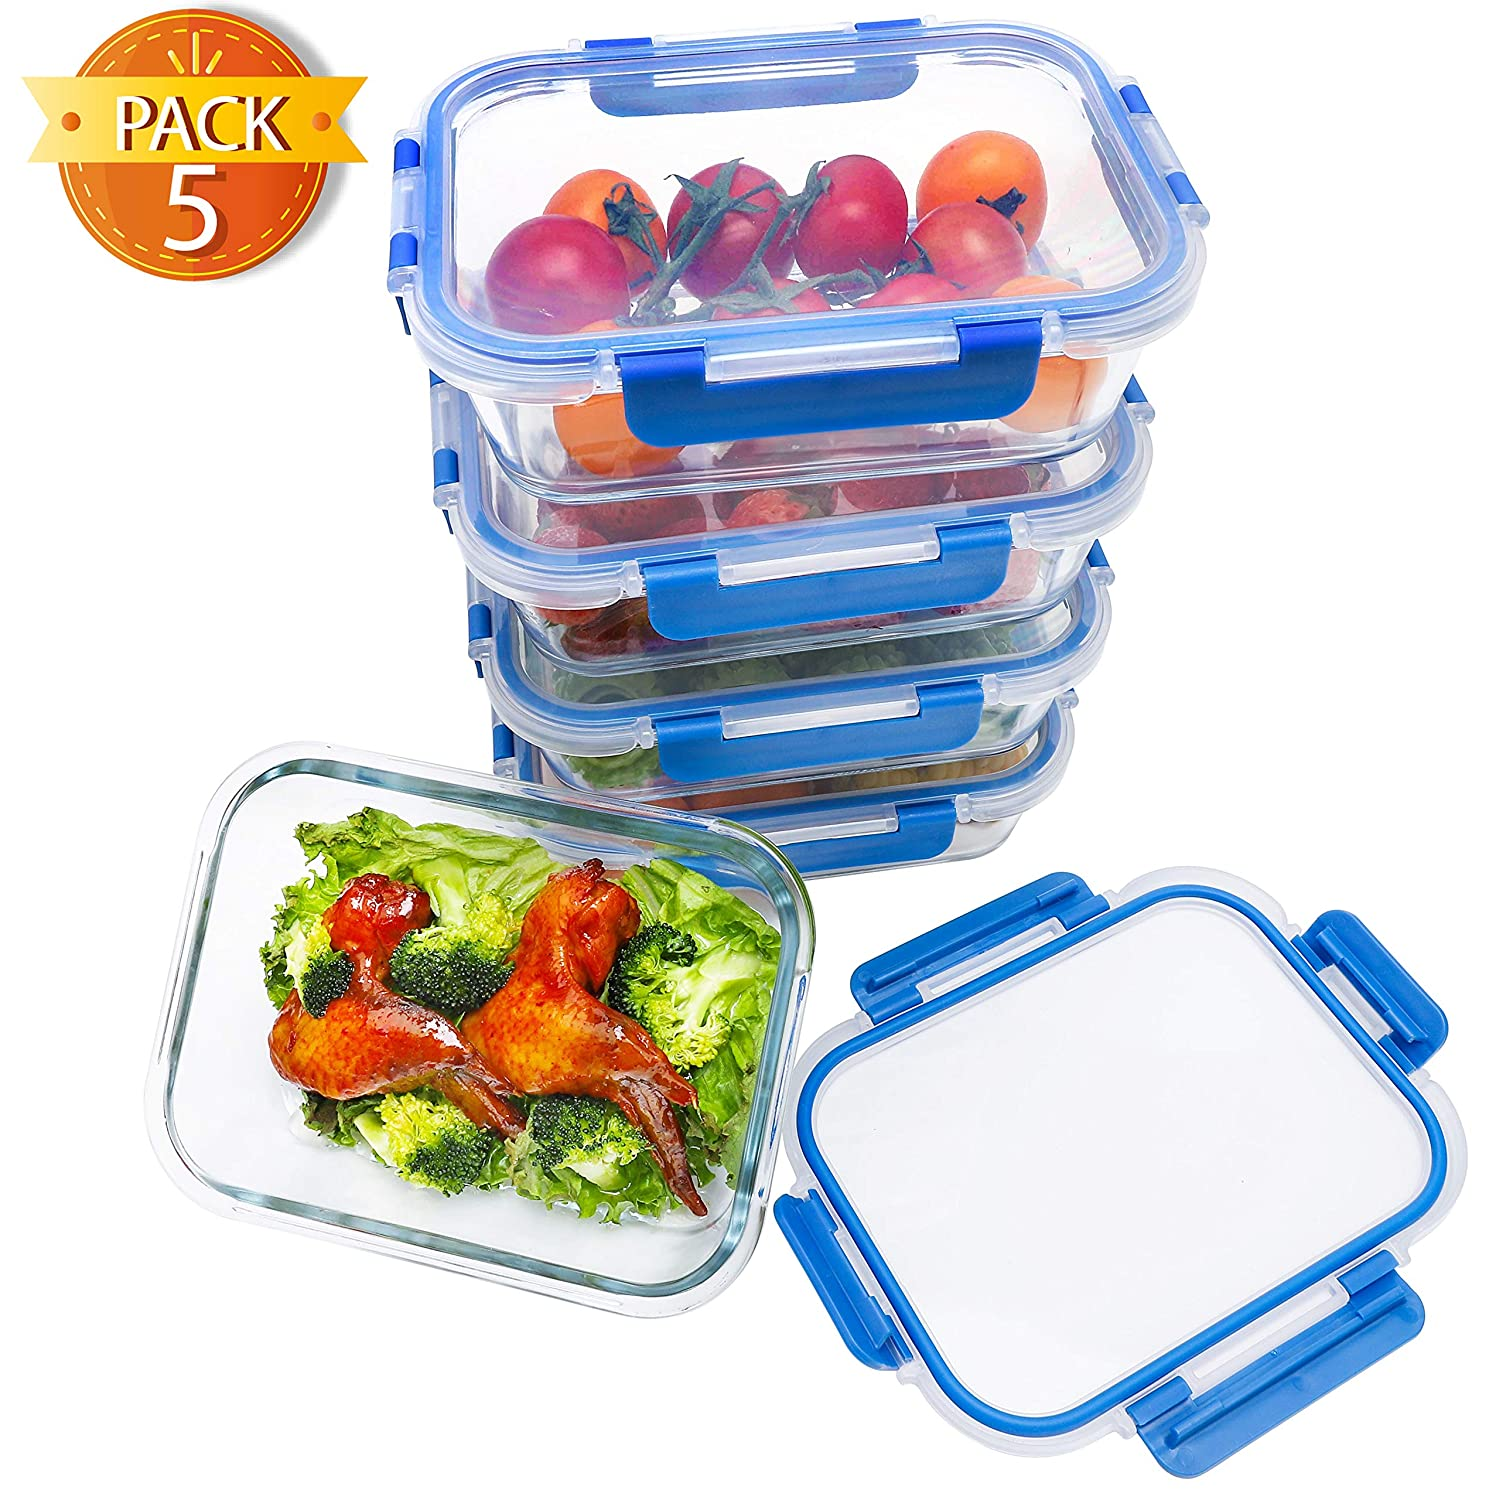 BlueHills Premium Glass Meal Prep Lunch Containers with Snap Lock Lids Glass Food Containers BPA-Free Microwave Oven Freezer Dishwasher Safe 5 pack set 10 pieces 4.5 Cups 36 Oz. (G001 One Compartment)